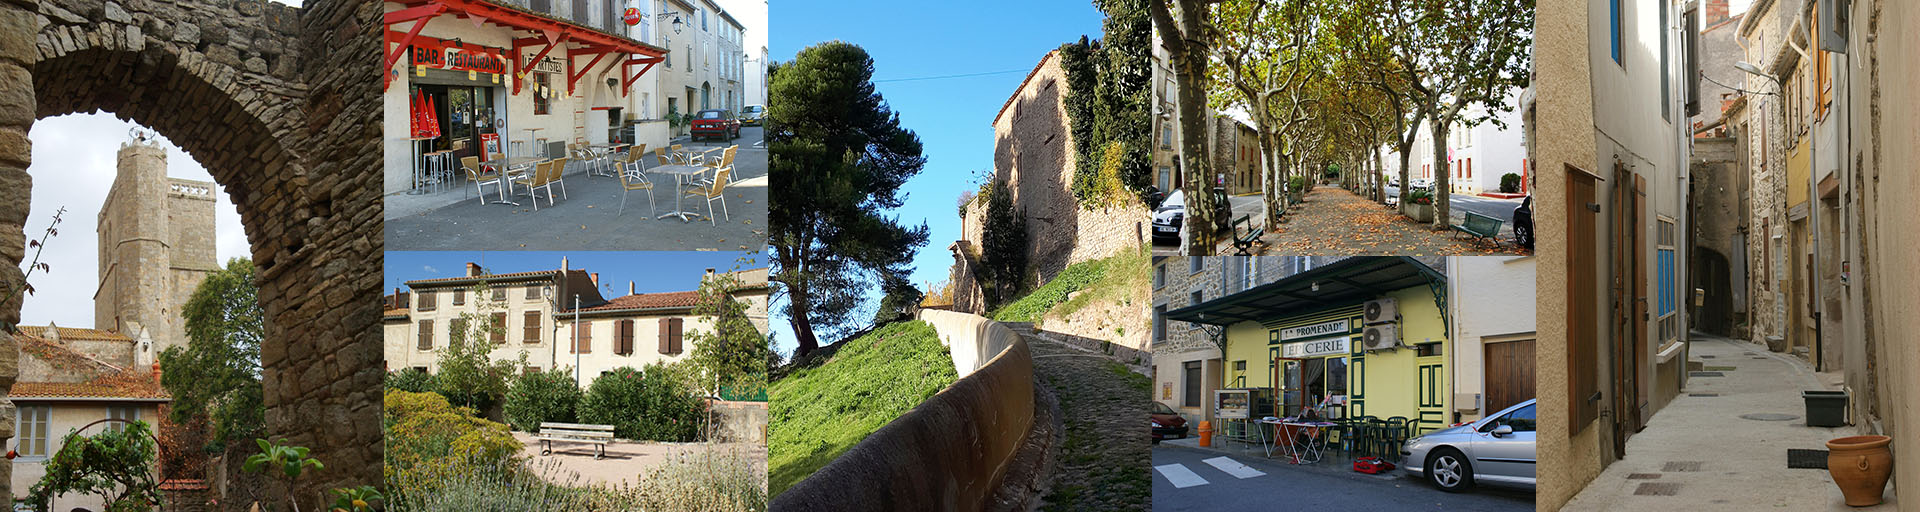 Azille scenes - Archway, Bar/Cafe, Park, Path and wall, Main promenade, Epicerie, Narrow streetscape